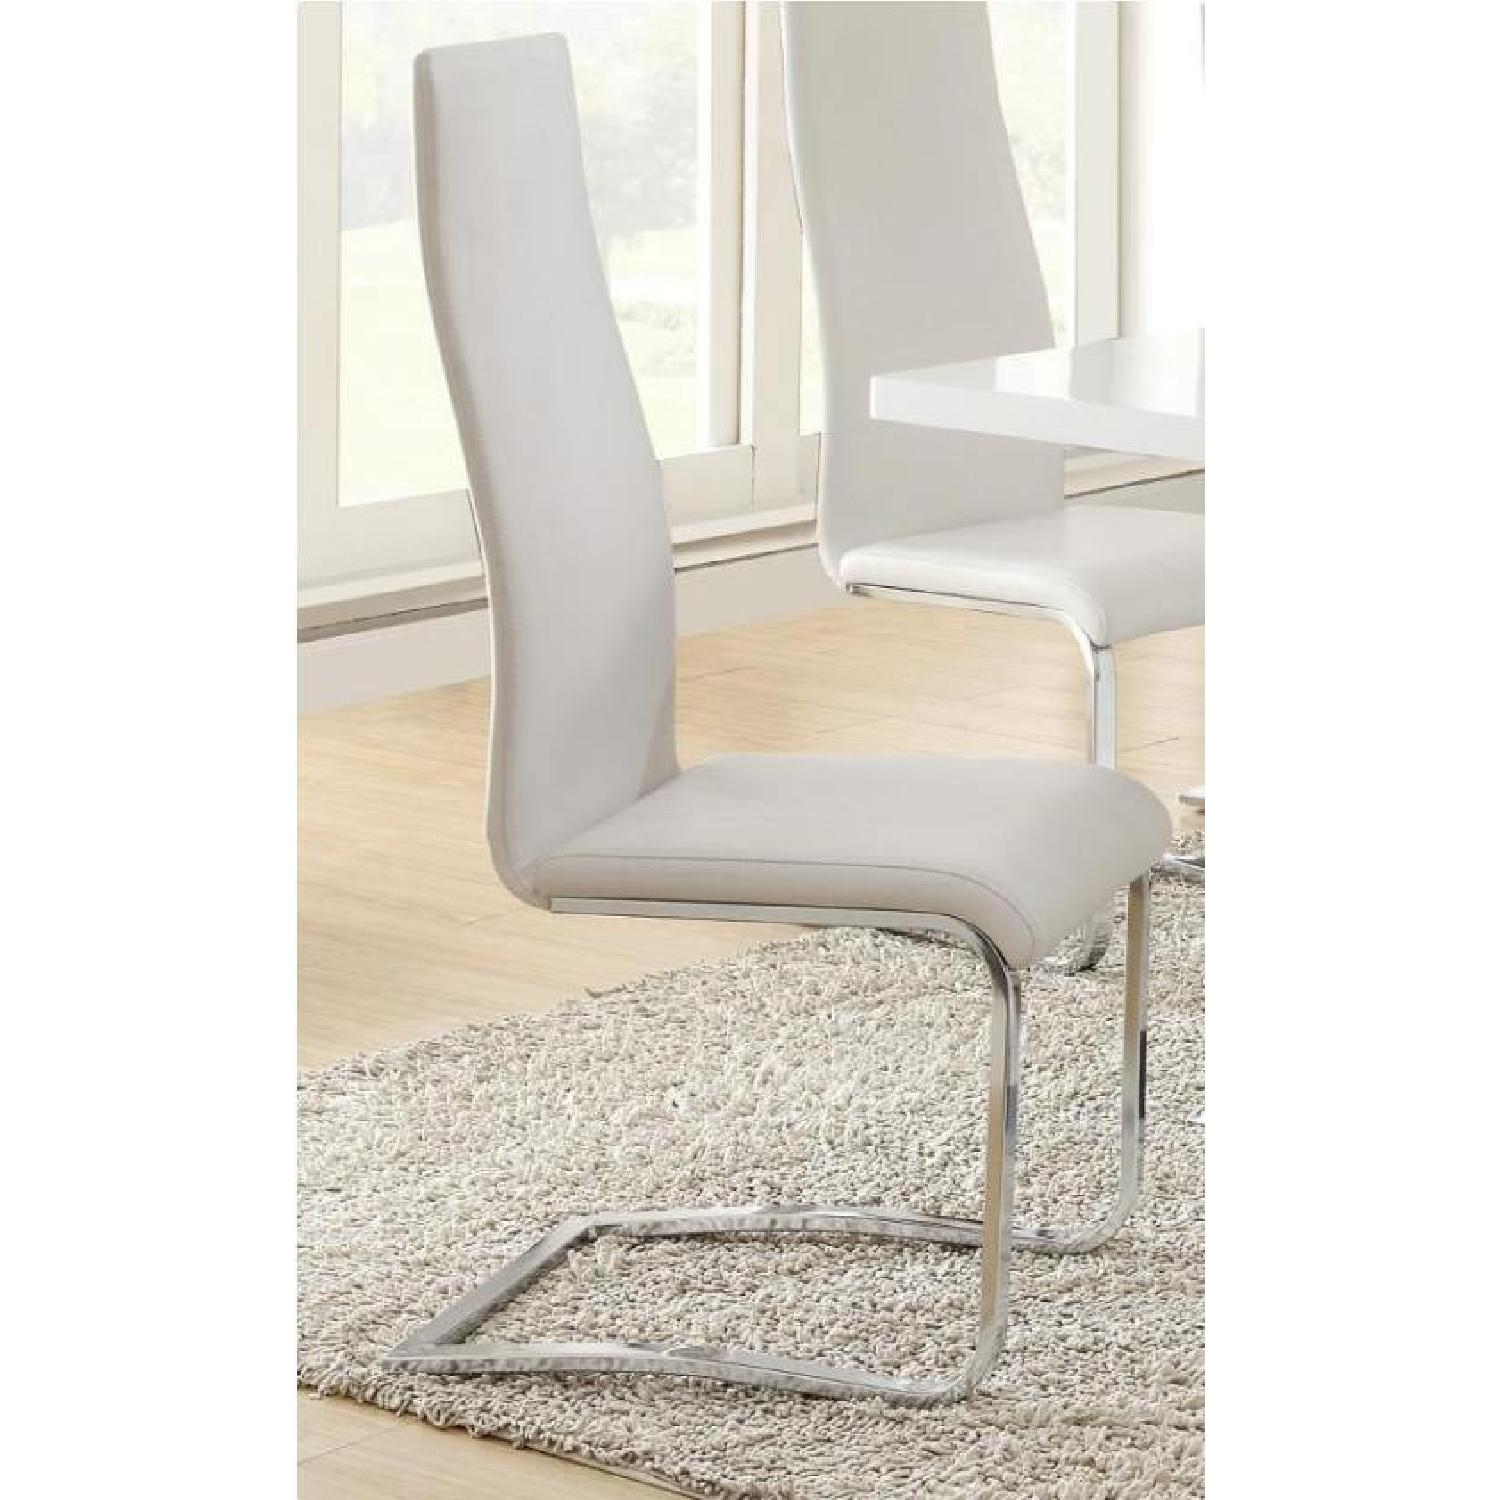 Modern White Dining Chairs w/ Solid Metal Legs - image-1